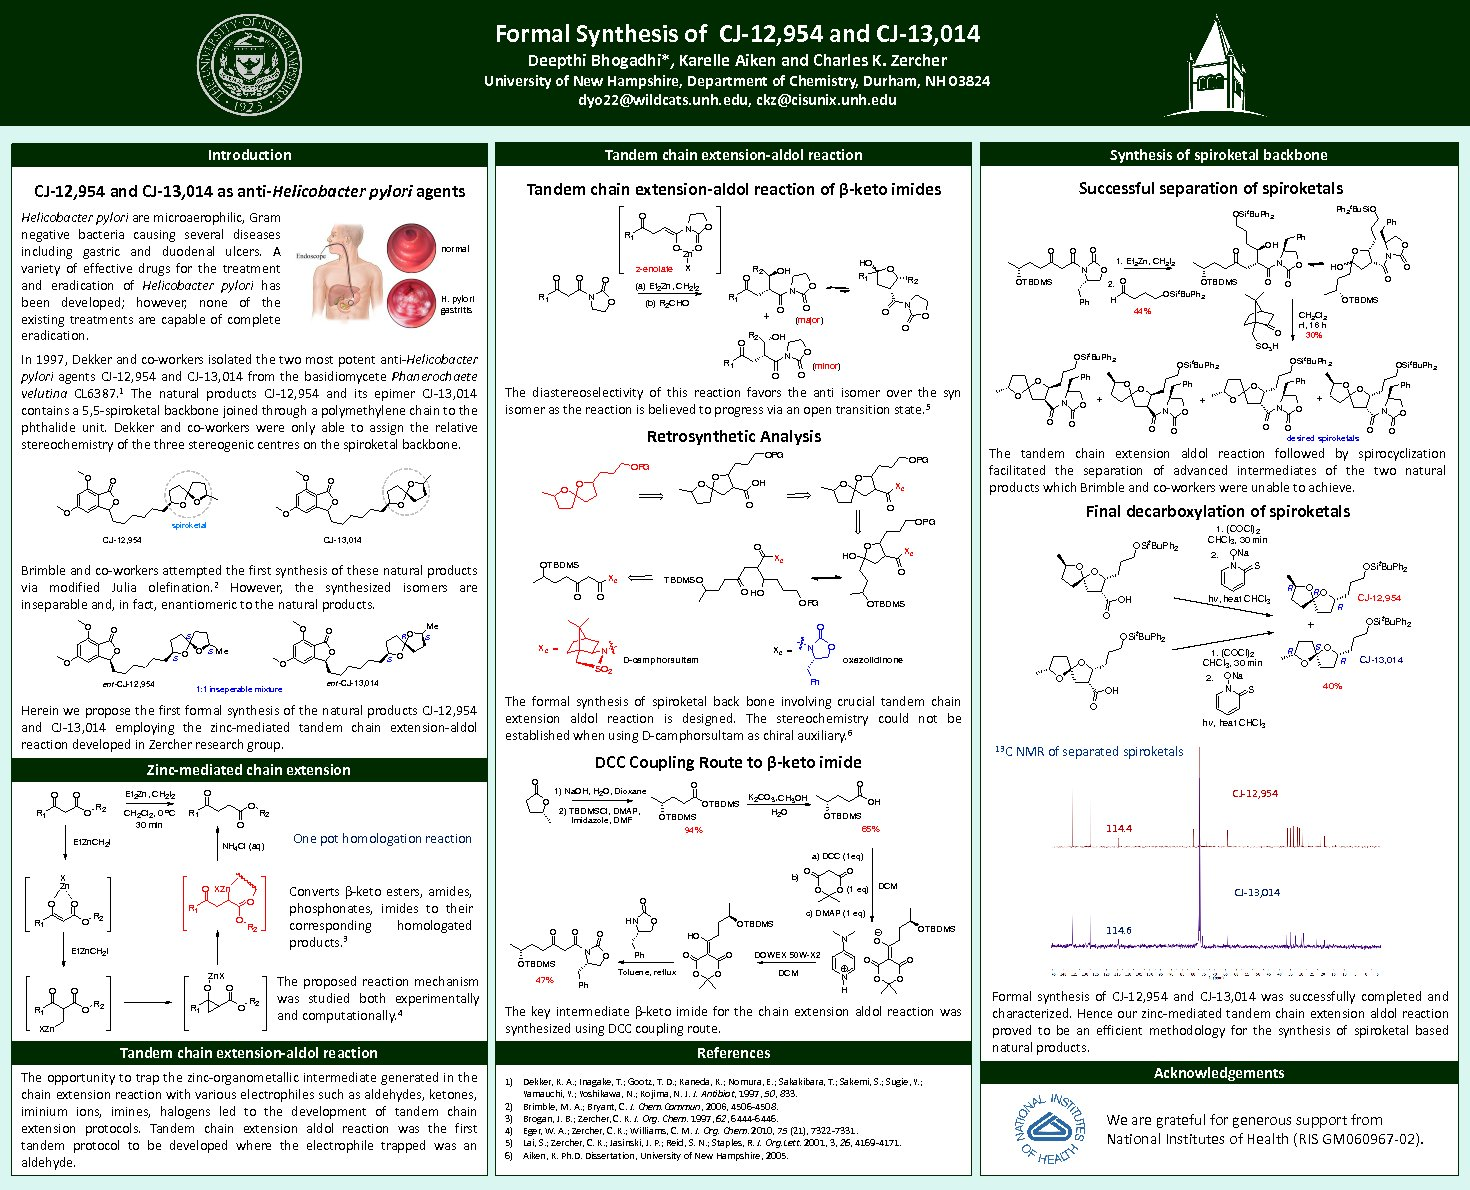 Formal Synthesis Of Cj-12,954 And Cj-13,014 by Achintya